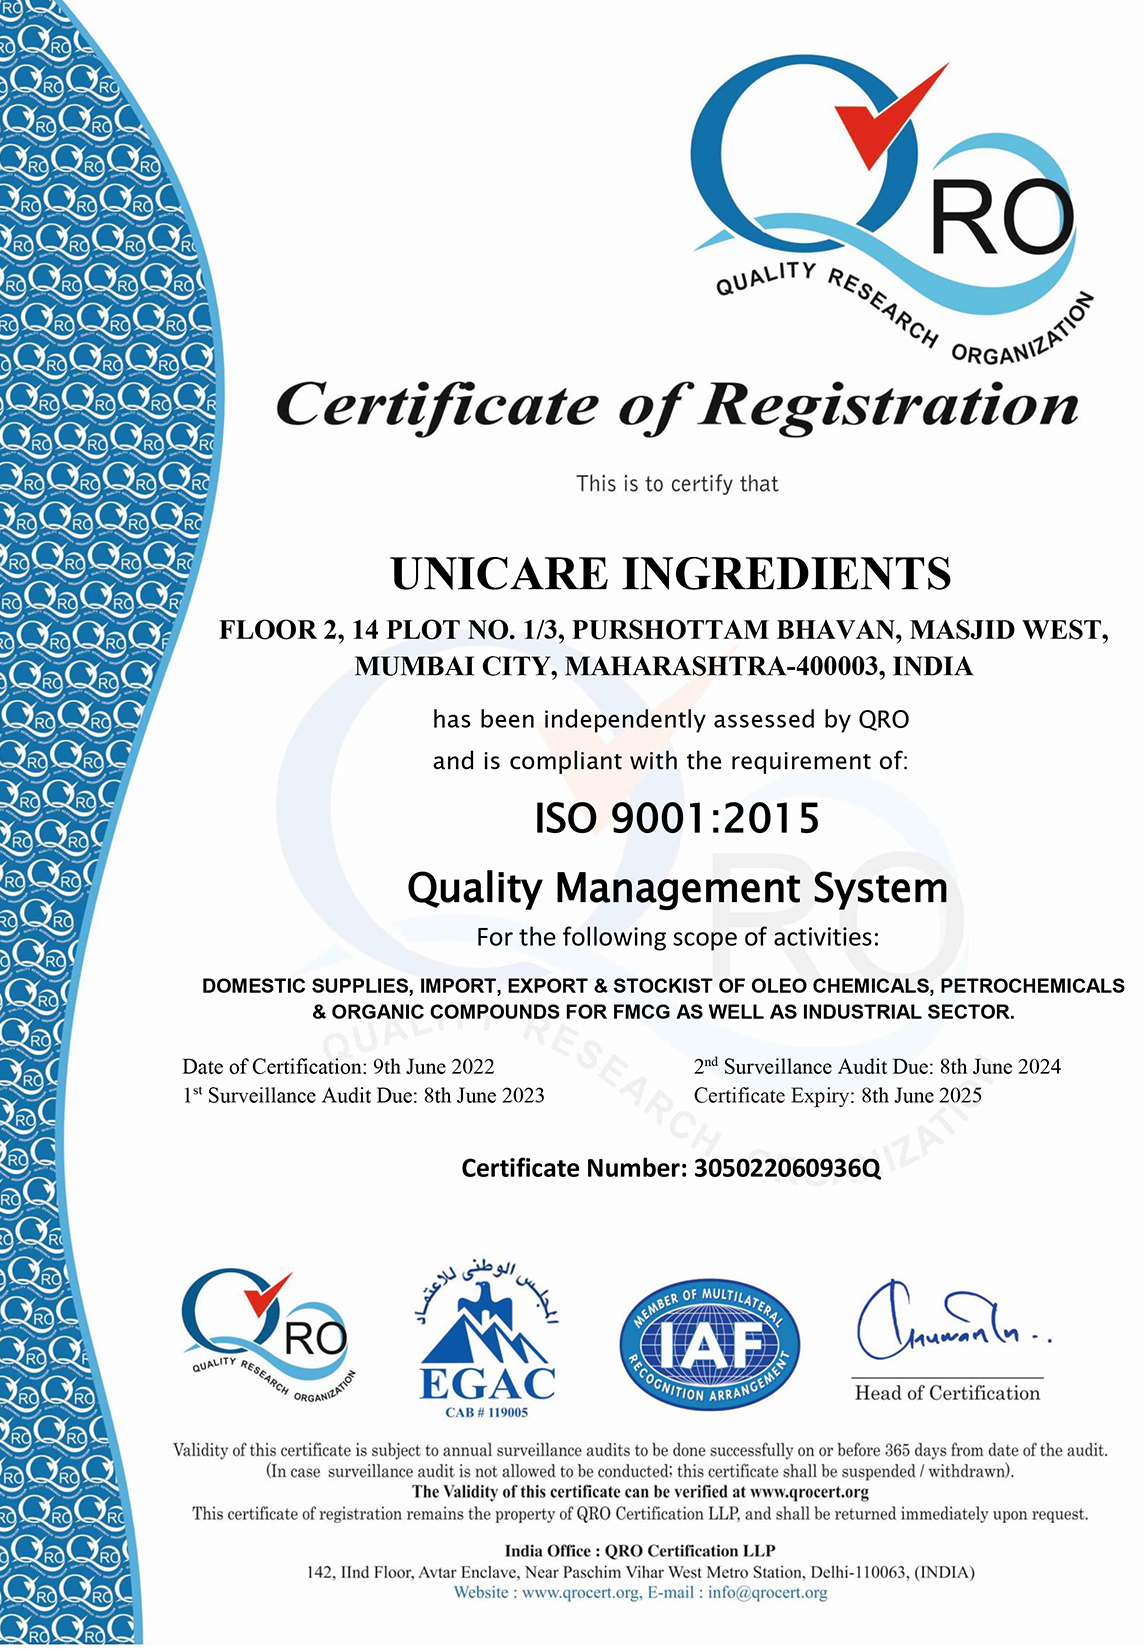 Unicare Ingredients An ISO 9001:2015 Certified Company